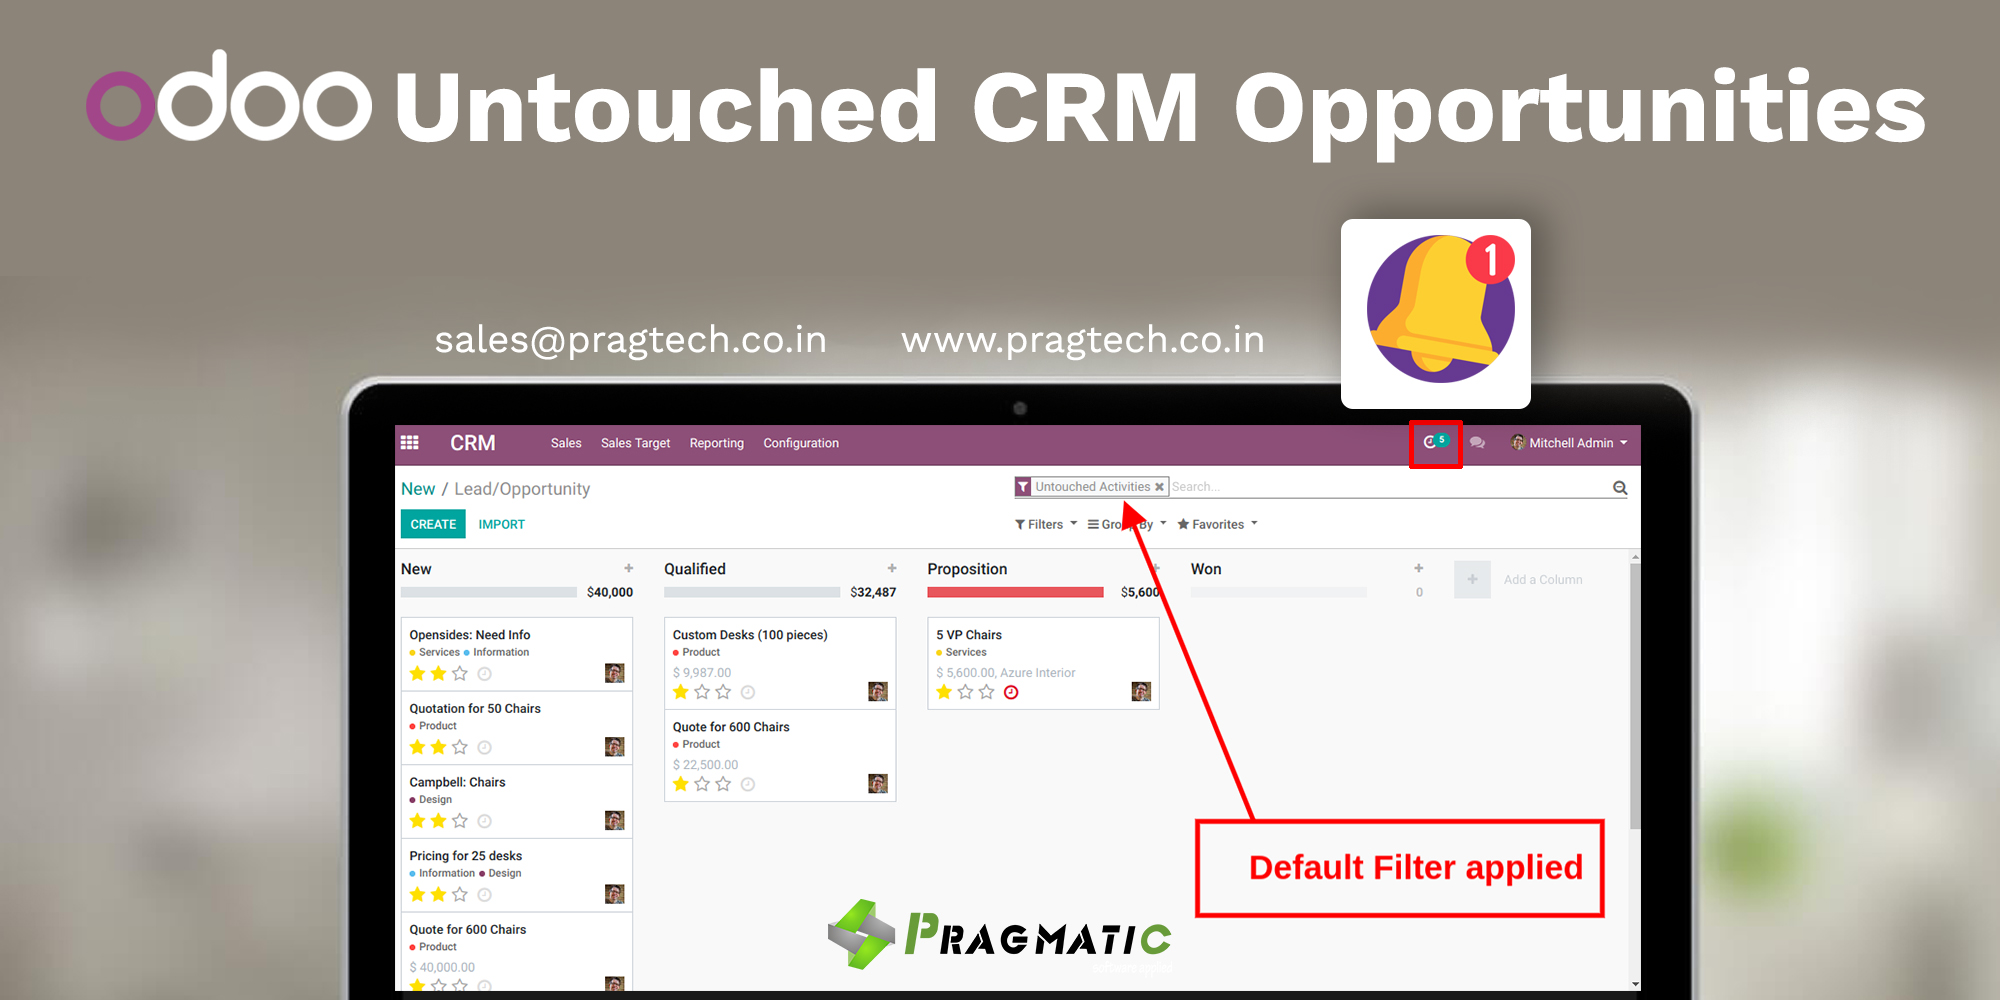 Odoo Untouched CRM Opportunities